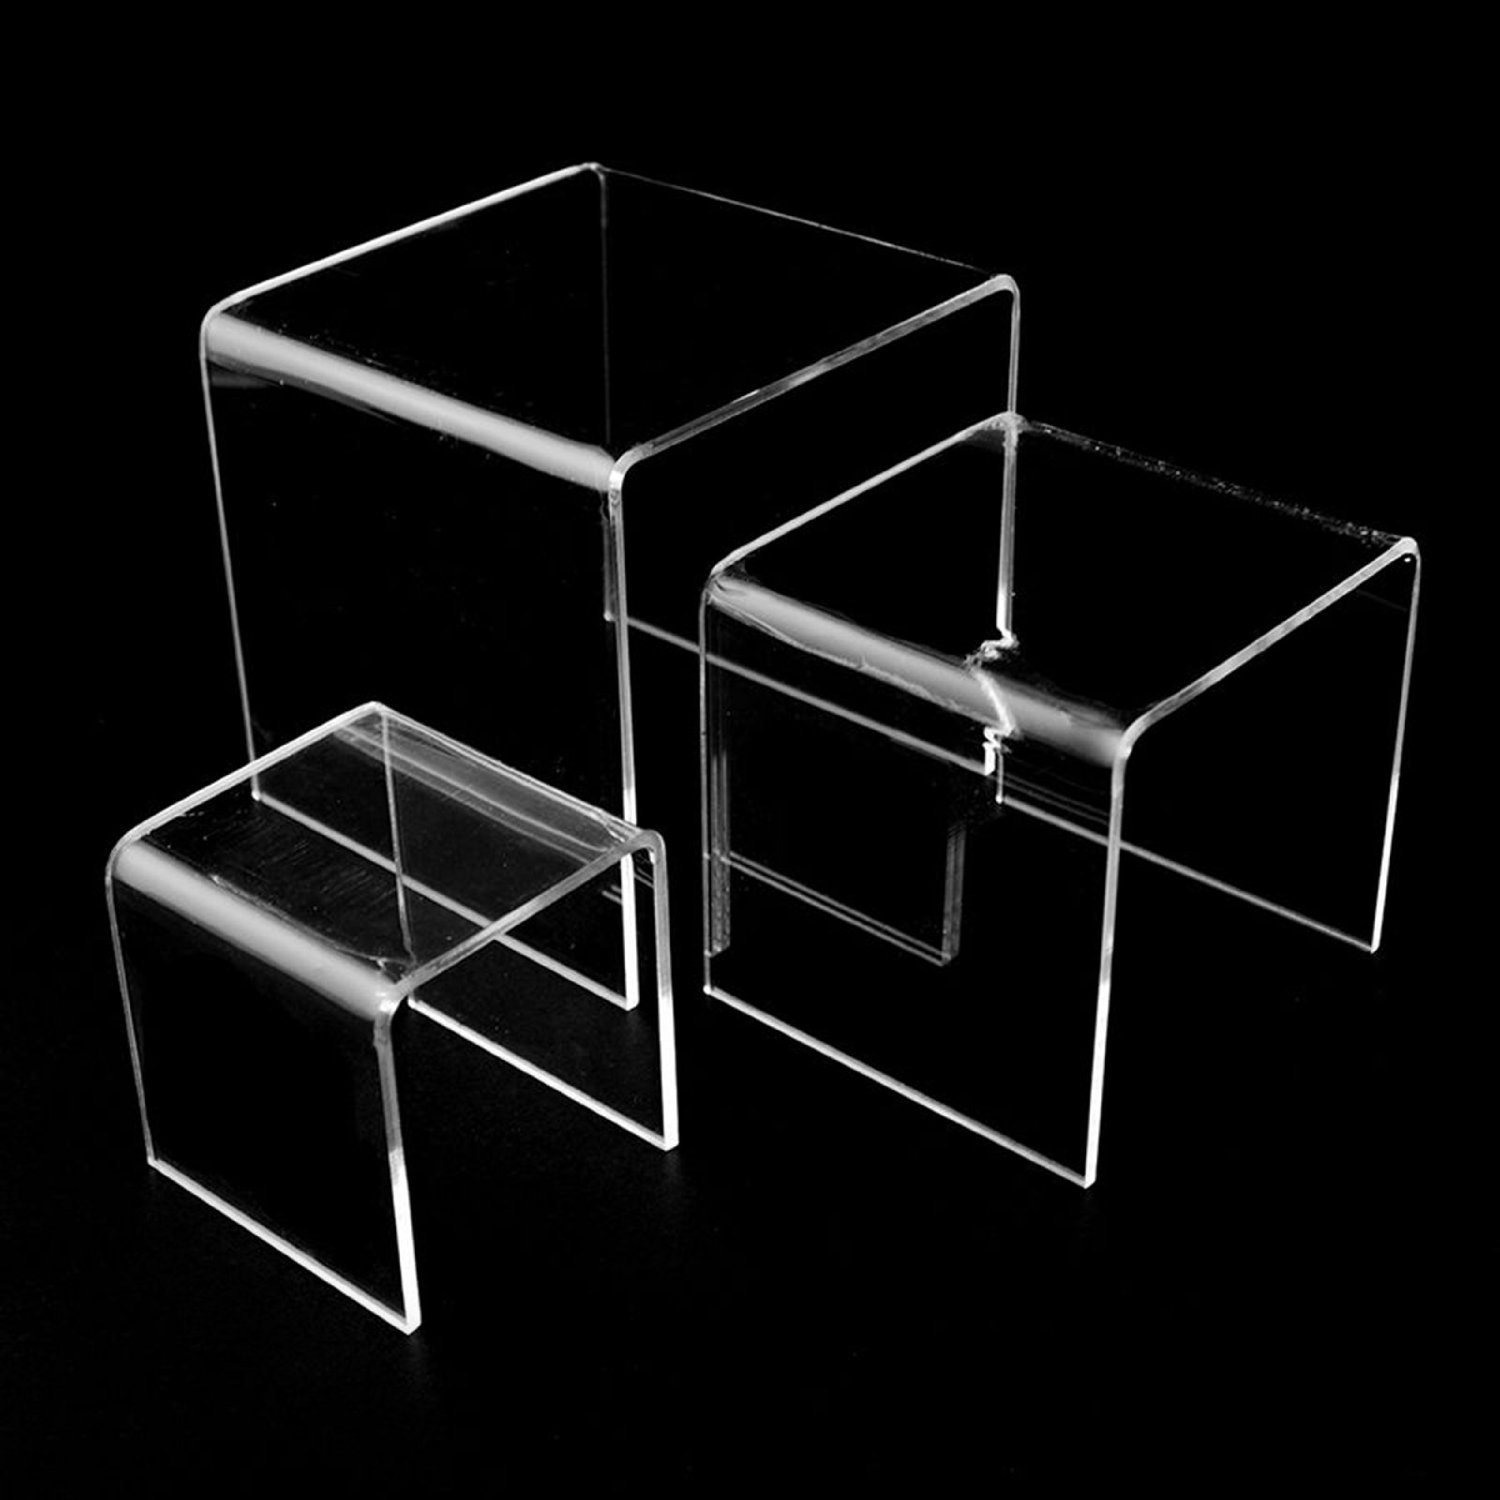 Adorox Top Quality (2 Set) Clear Acrylic Display Riser by Adorox (Image #3)